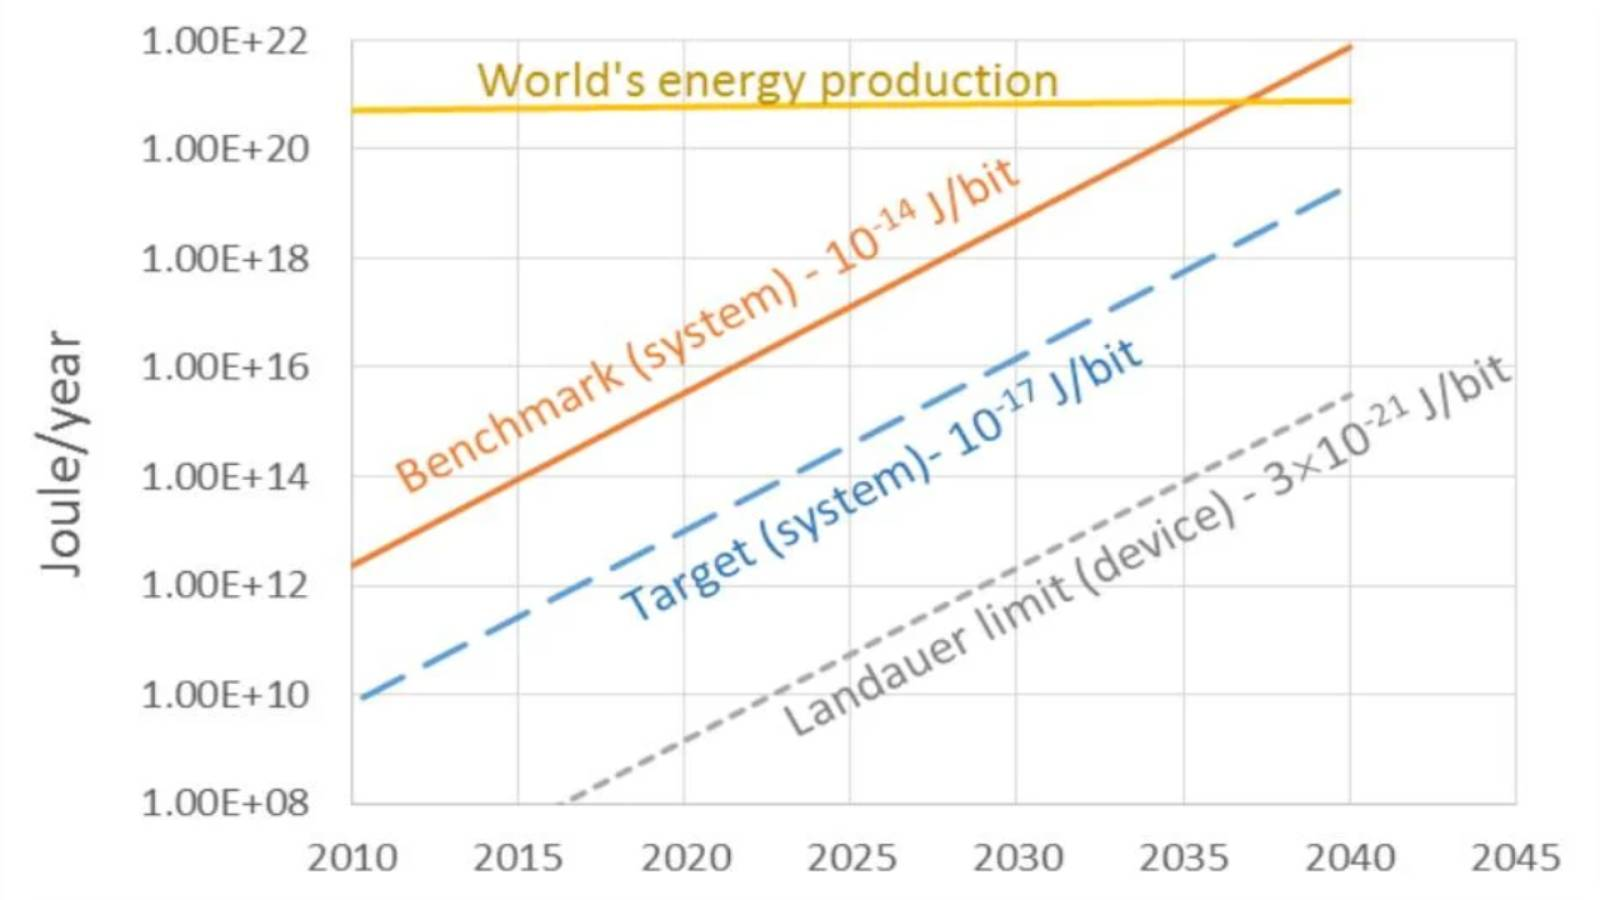 A graph showing that computing energy consumption would exceed the world's energy production capacity by the mid 2030s